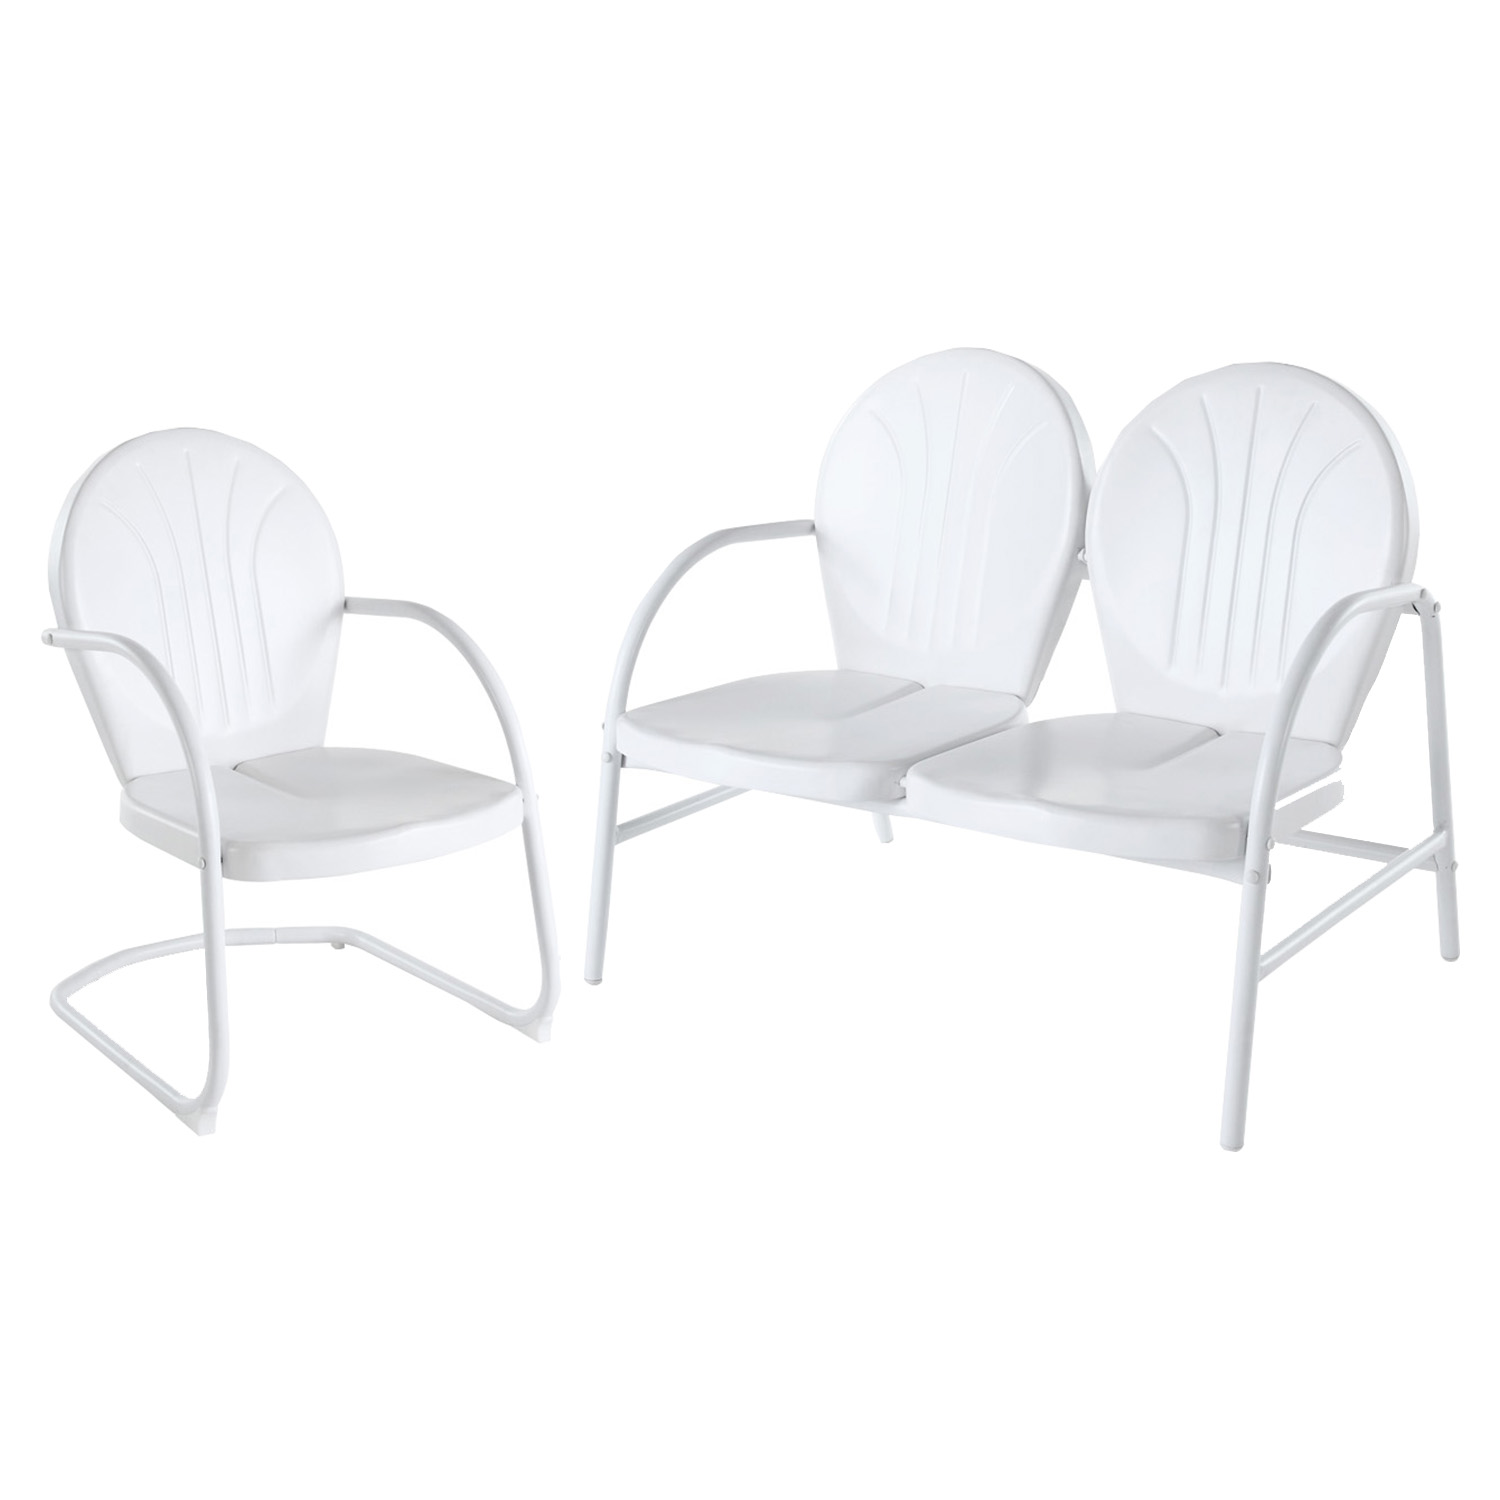 Griffith 2-Piece Metal Outdoor Conversation Seating Set - White - CROS-KO10005WH